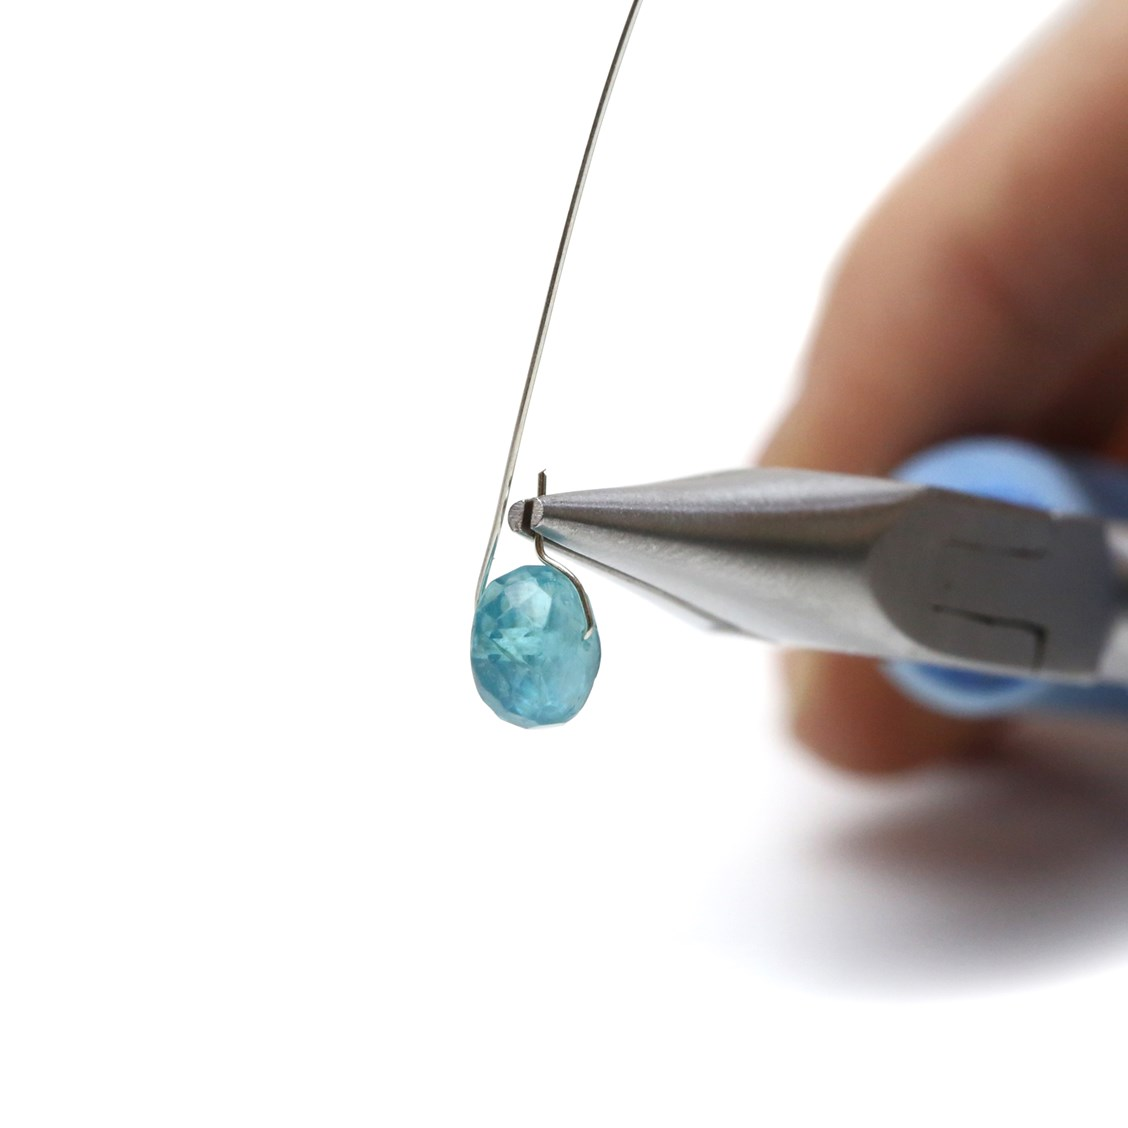 How To Wire Wrap A Bead | Kernowcraft